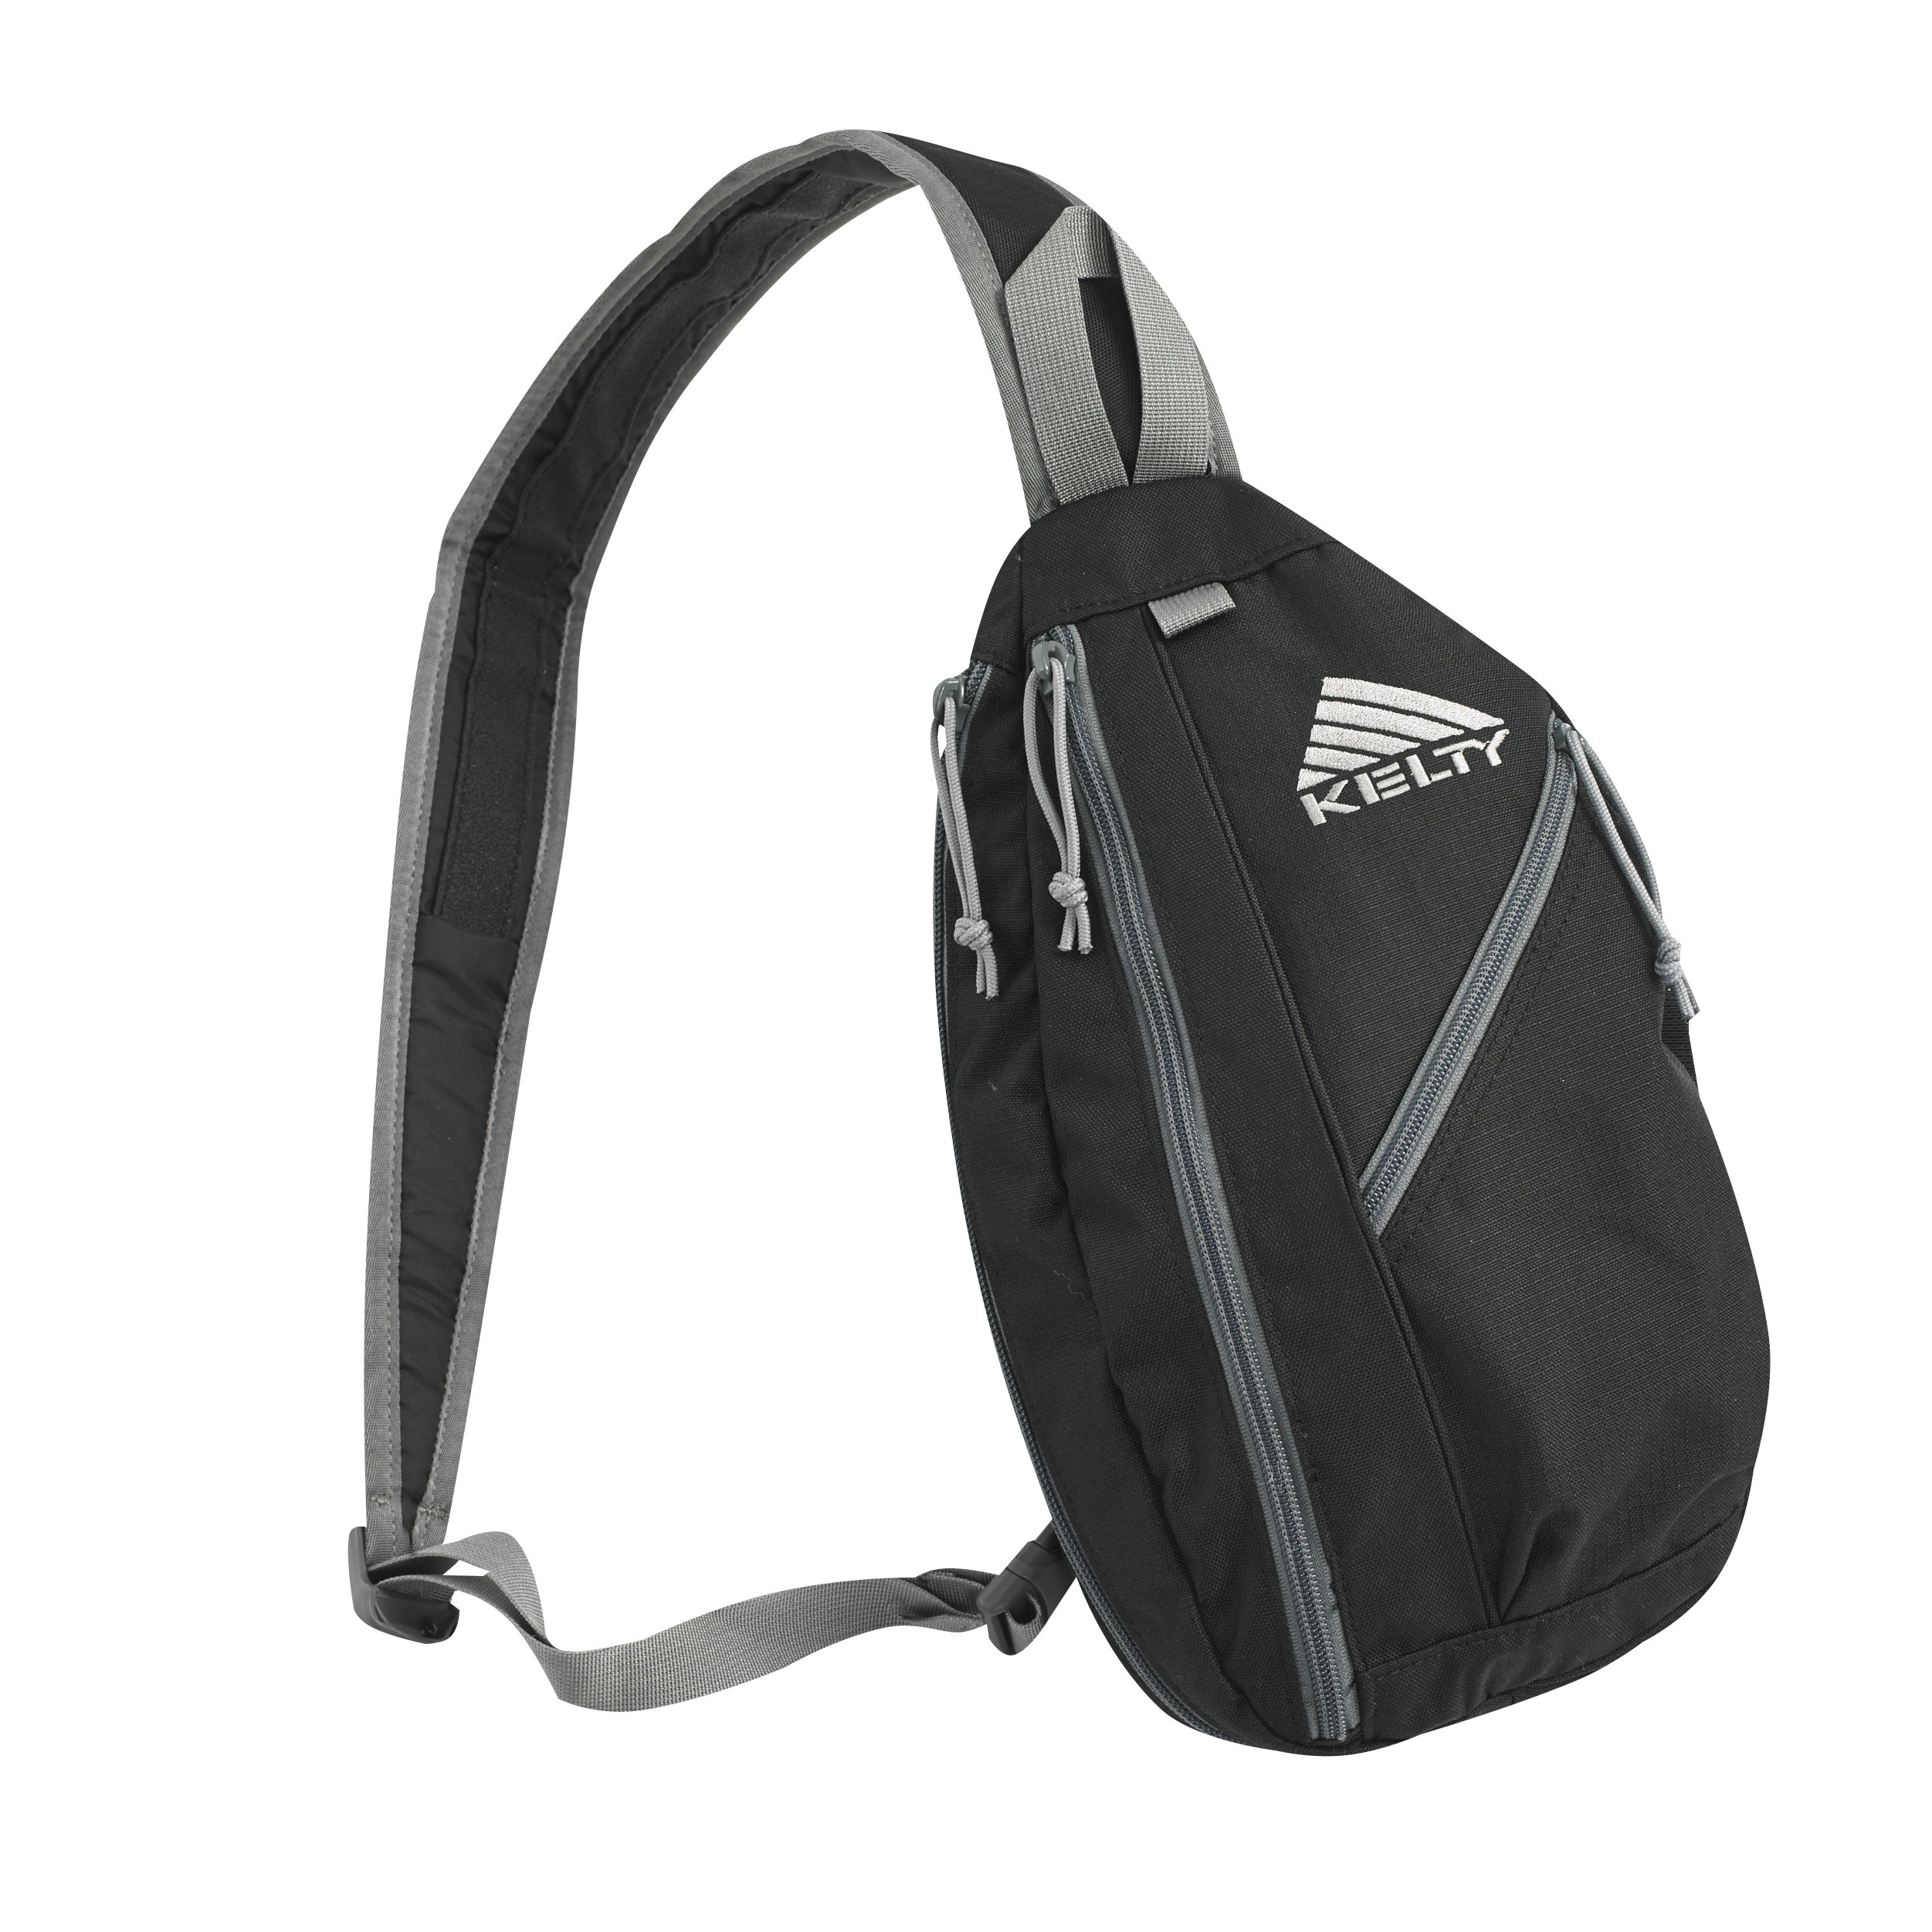 Kelty Tactical Sling (Right Hand, Black)